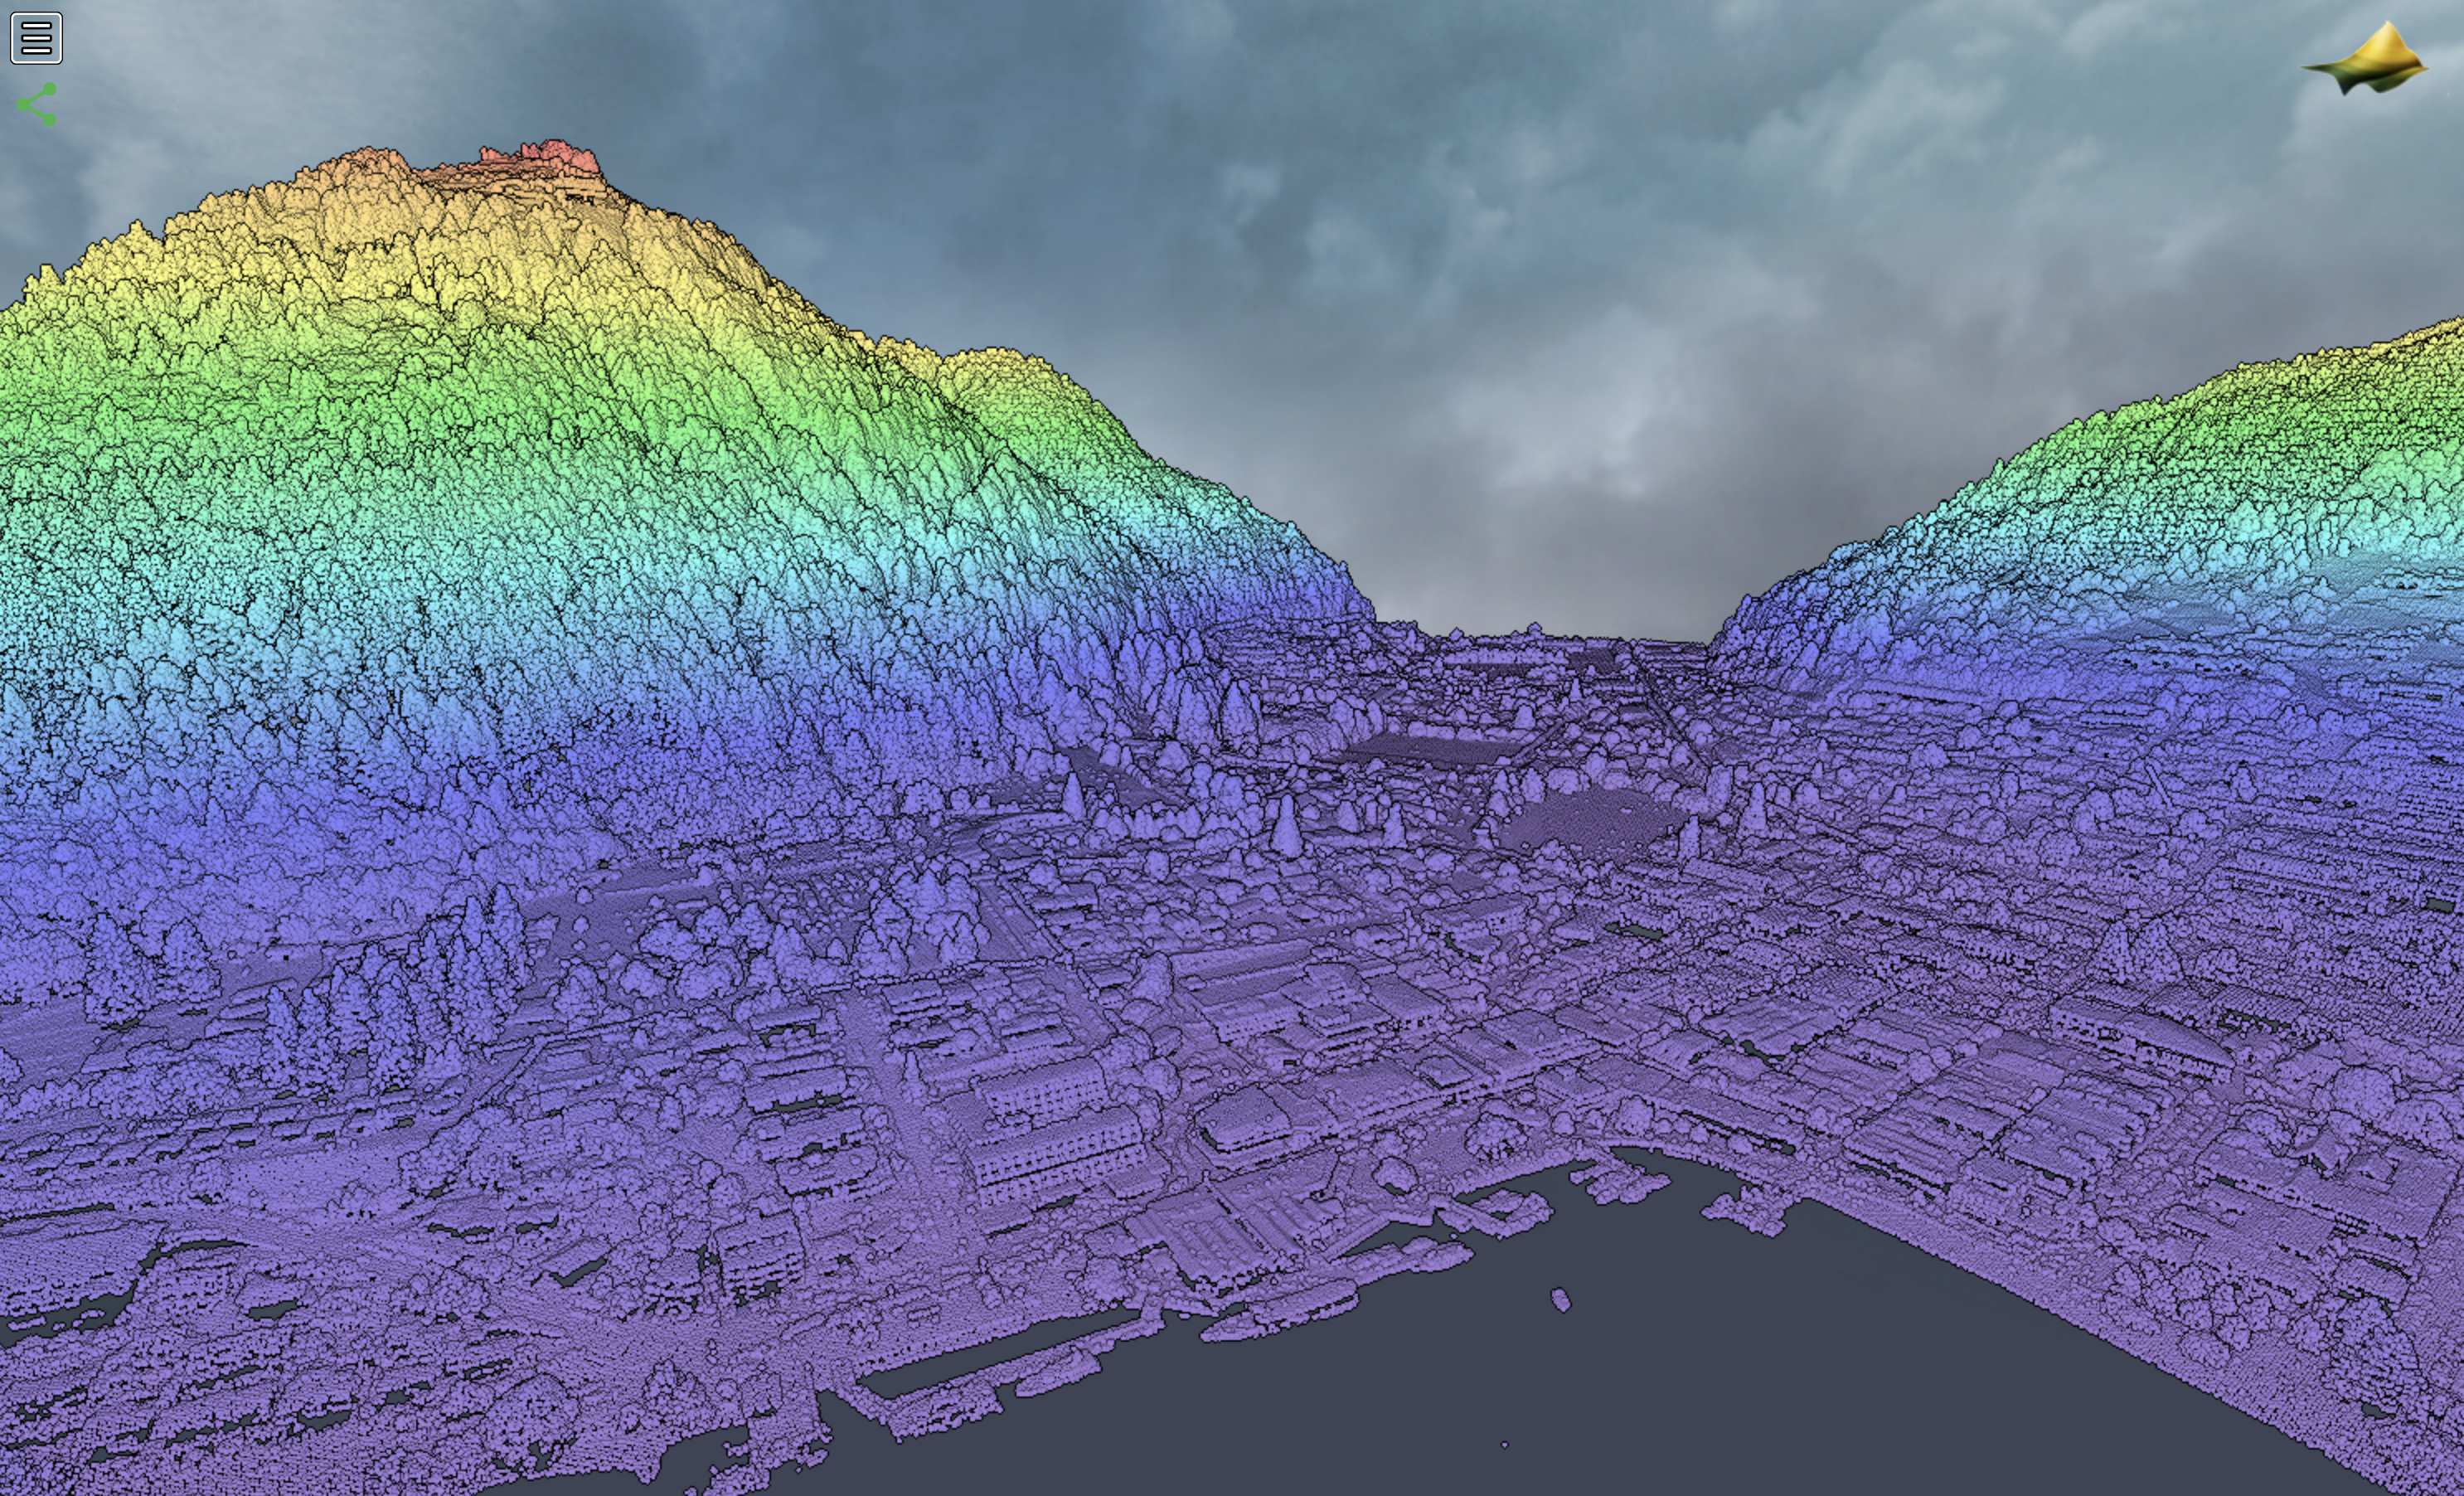 Central Queenstown point cloud, colored by elevation